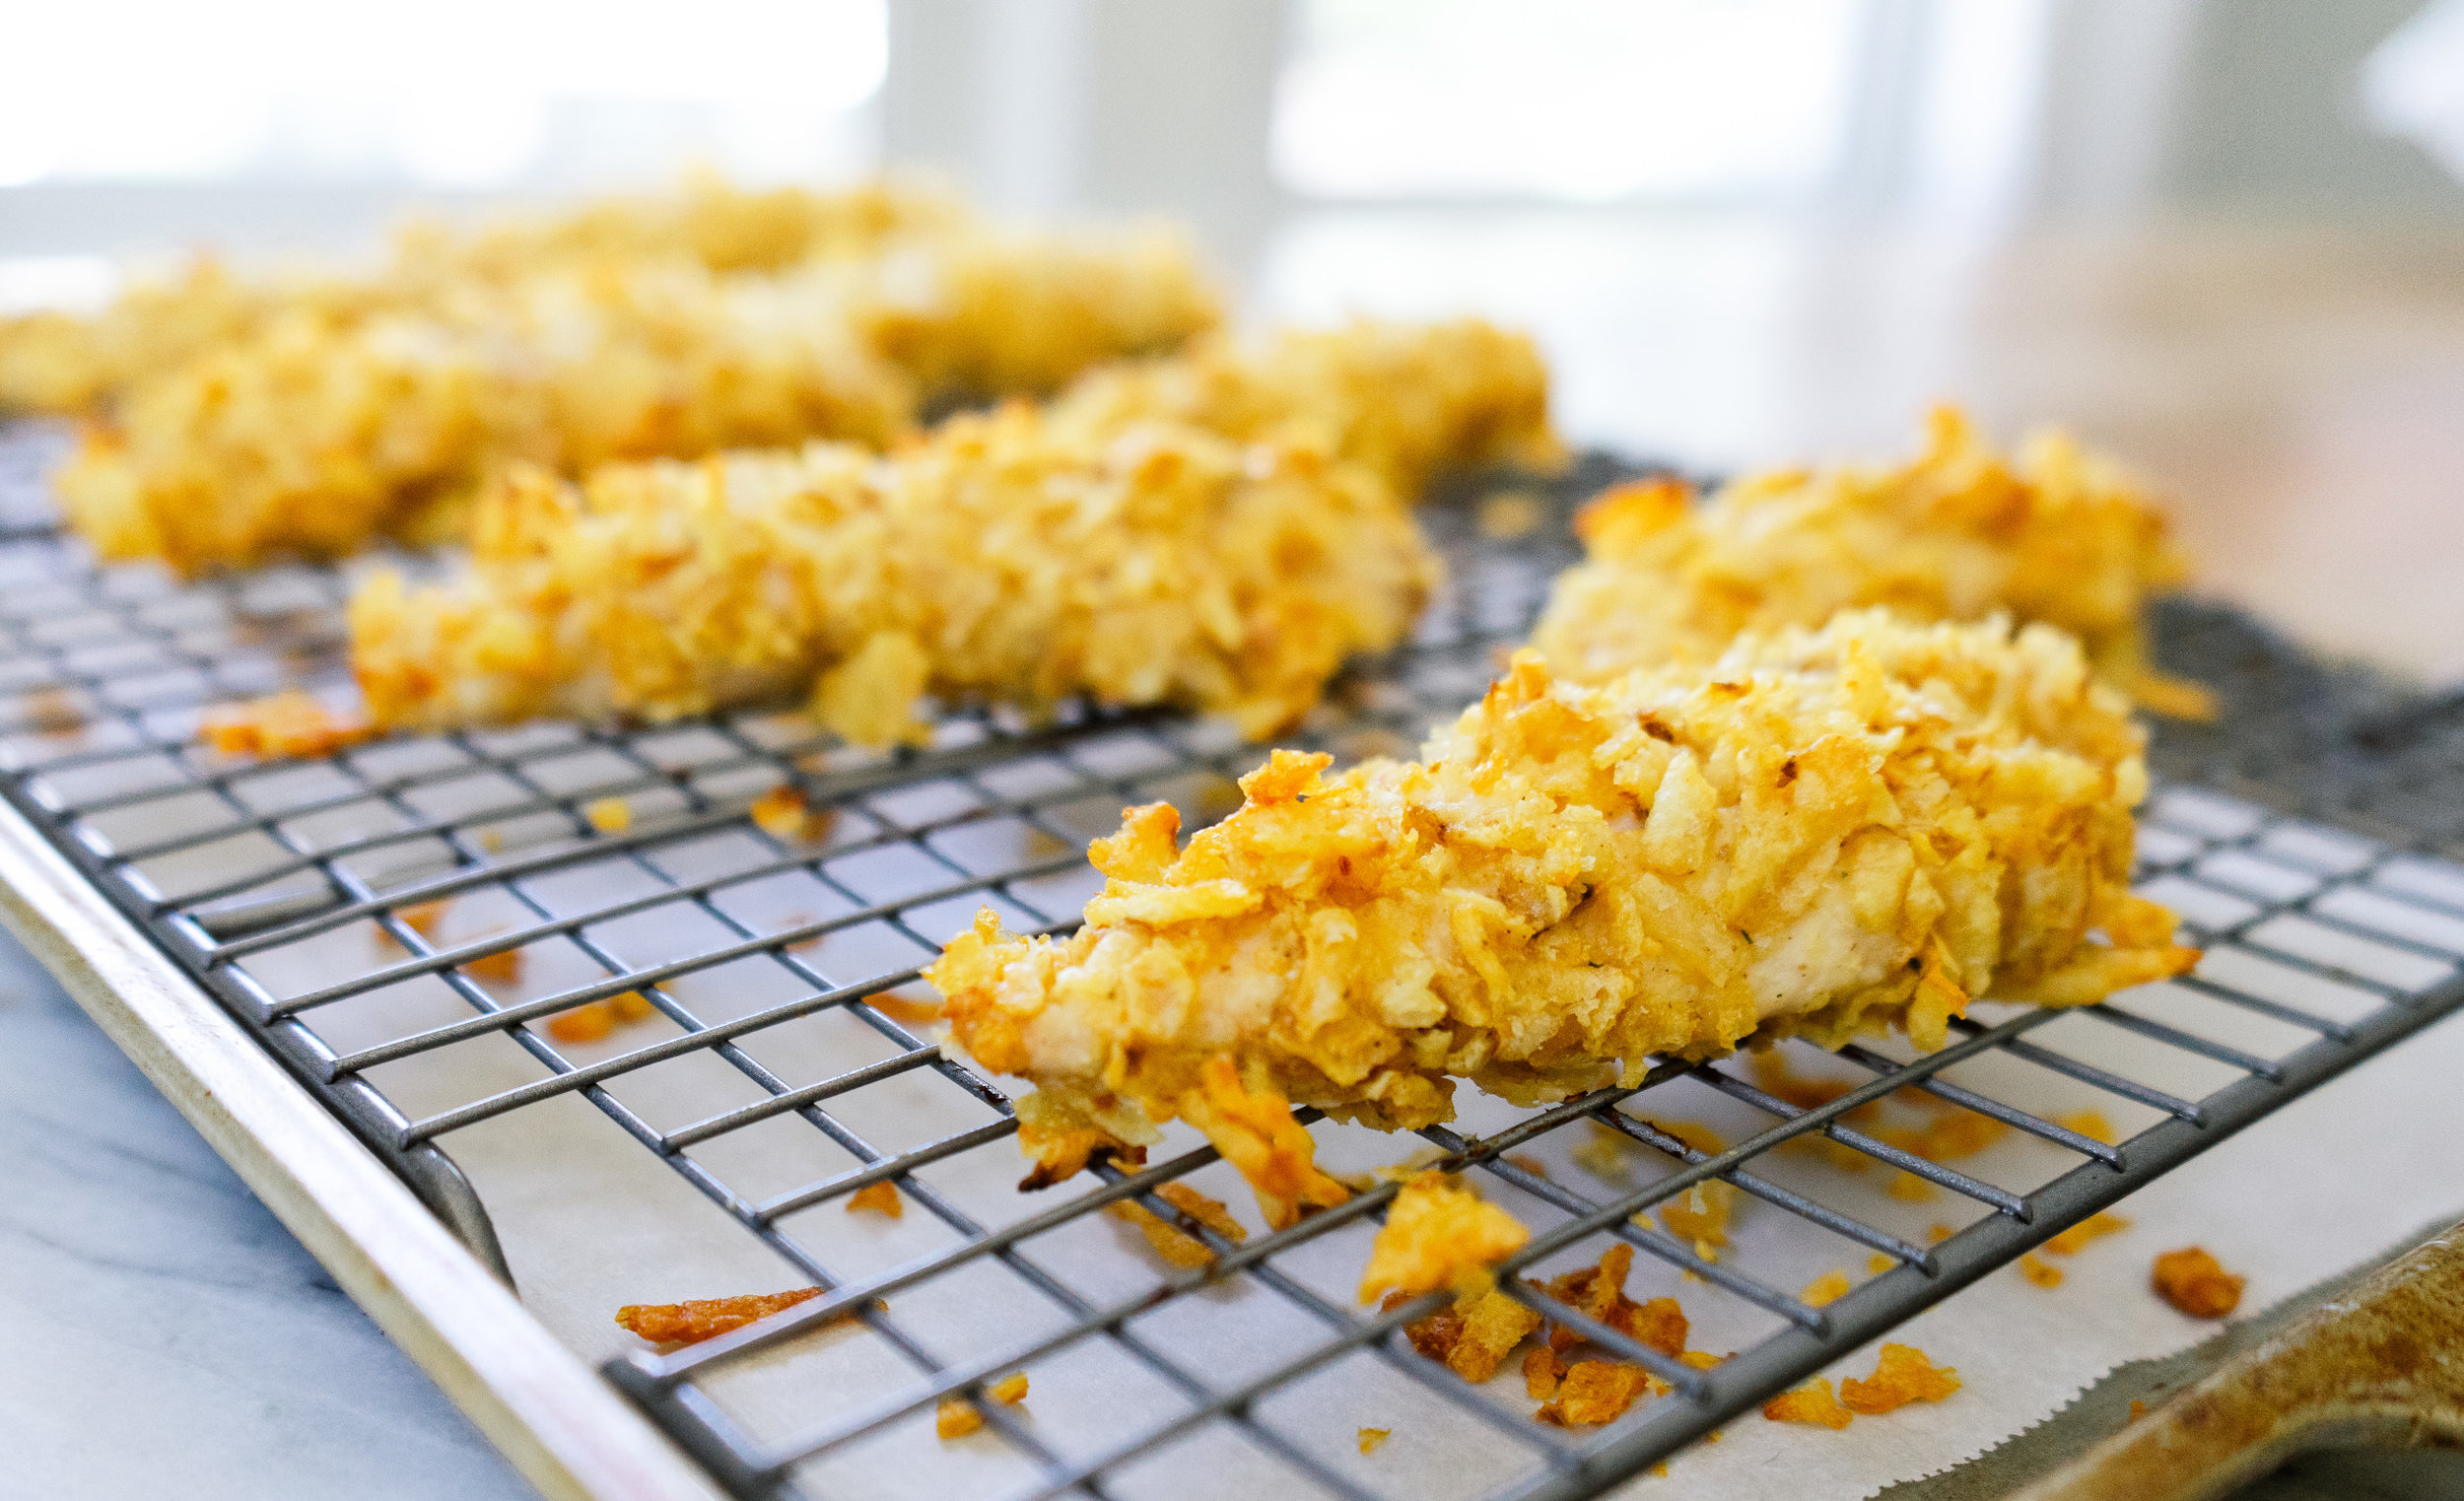 Potato chip chicken tenders are an easy and delicious way to get the taste of crispy, fried chicken tenders at home without having to deep fry. Make a batch of these crispy chicken tenders for your kids, for a party appetizer or for your next meal prep.